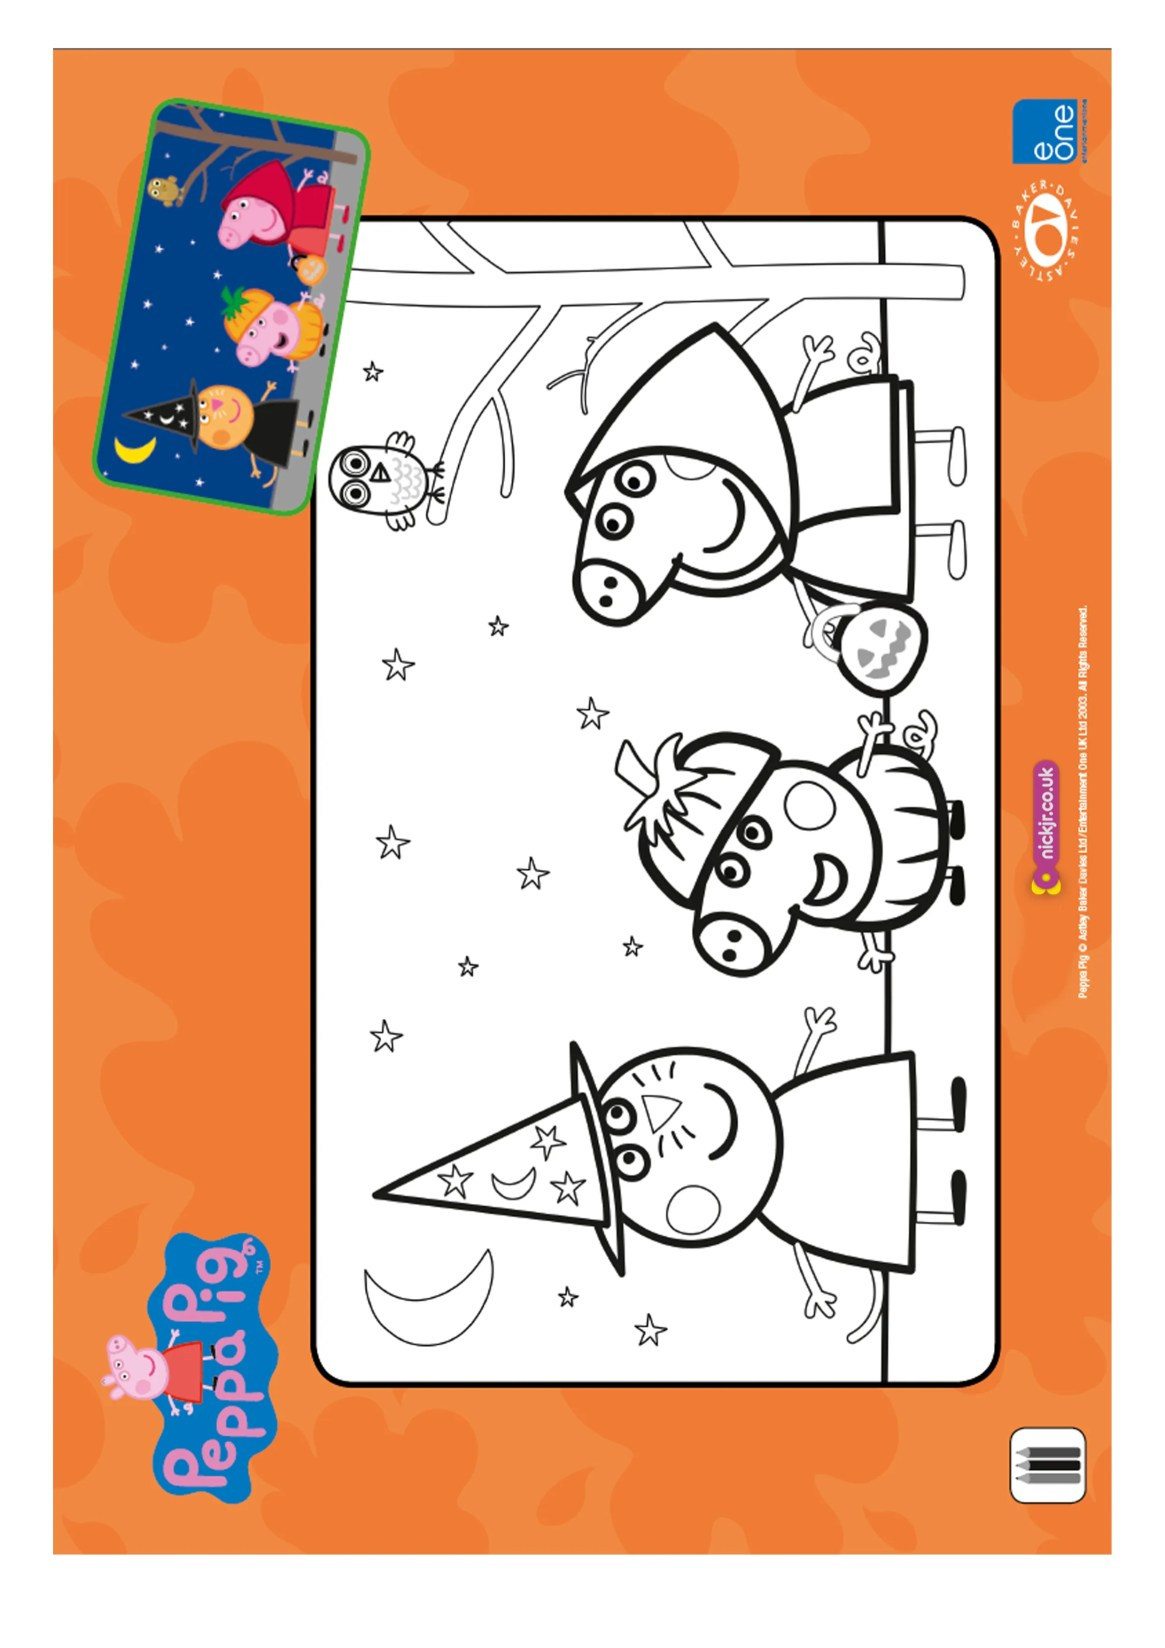 Peppa Pig Halloween colouring page